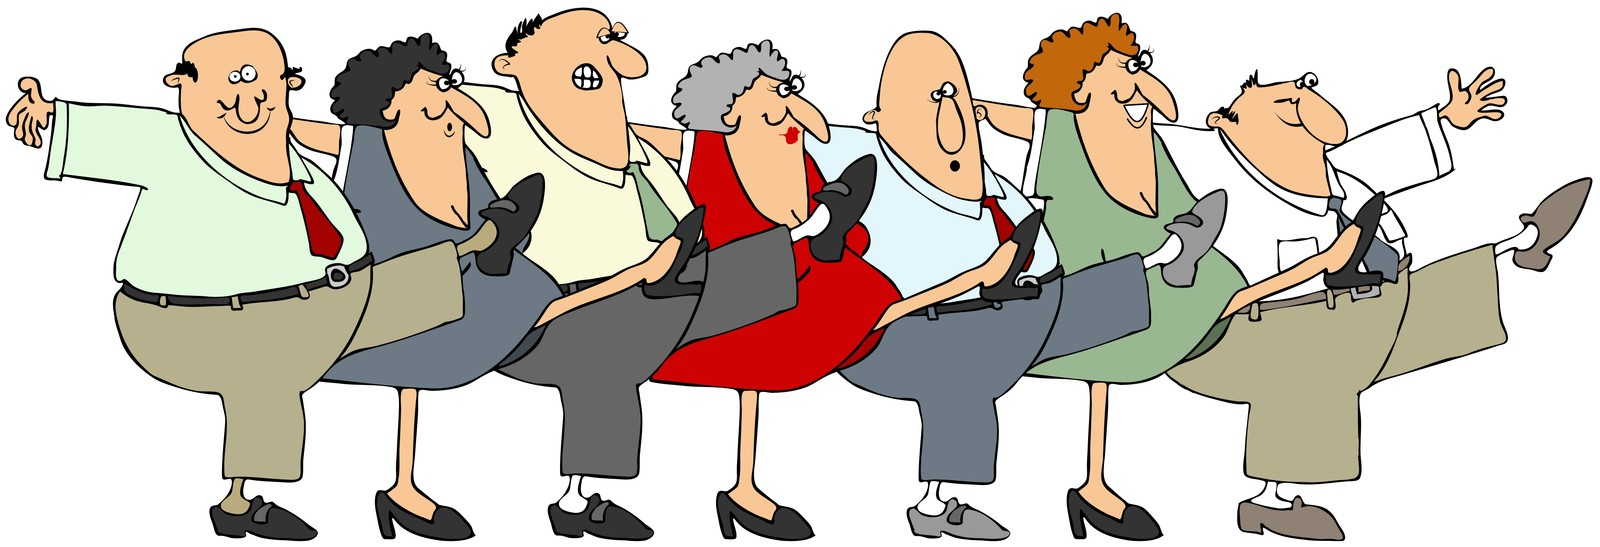 Free seniors cliparts download. Exercising clipart group exercise